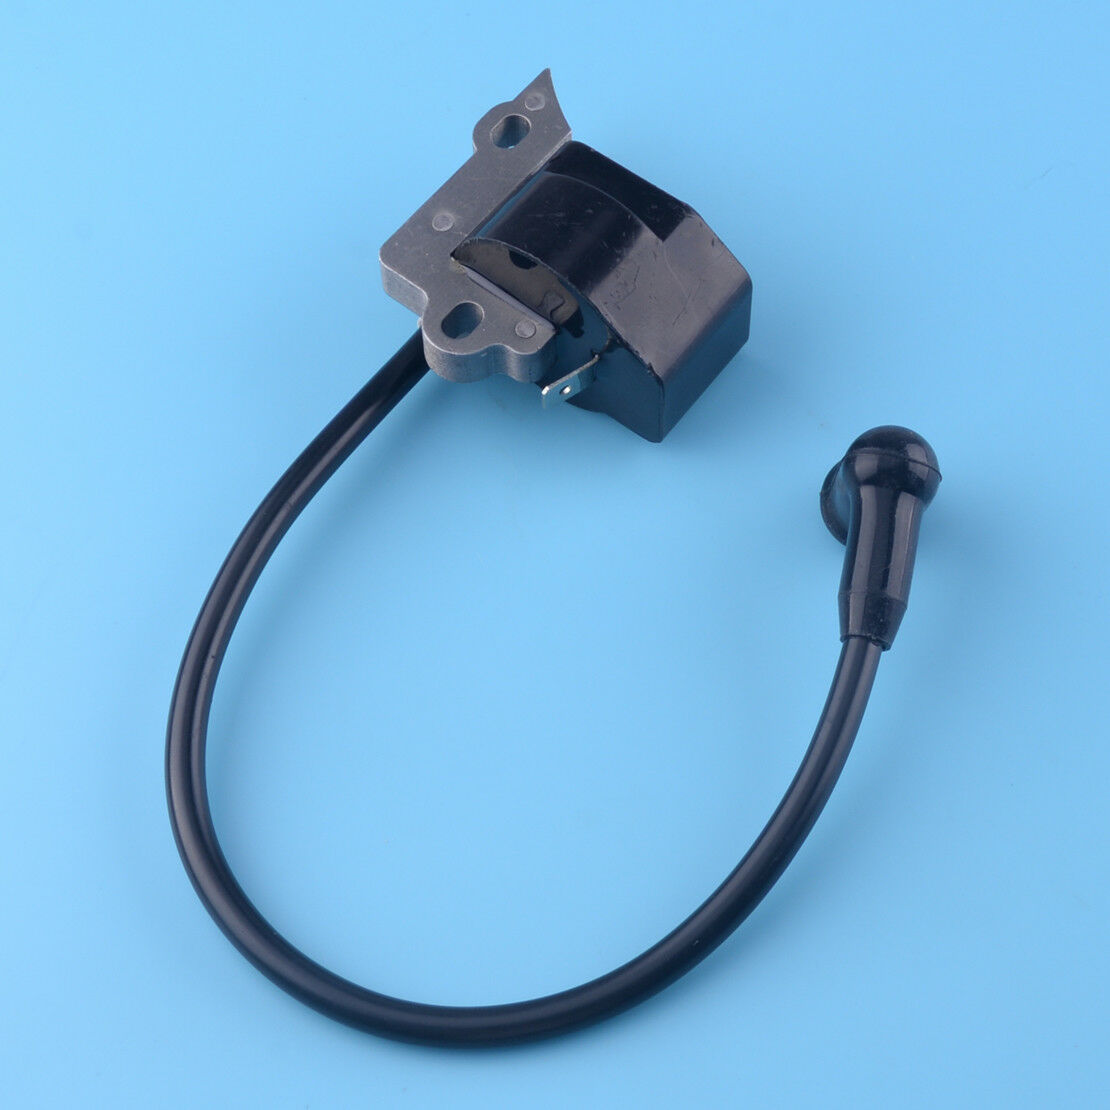 Lawnmower Parts Accessories Prices On Daasy Page 120 Mower Jpn Honda Cutter Gcv160 Lawn Diagram Ignition Module Coil For Poulan Craftsman Chainsaw Weed Eater Blowers 545158001